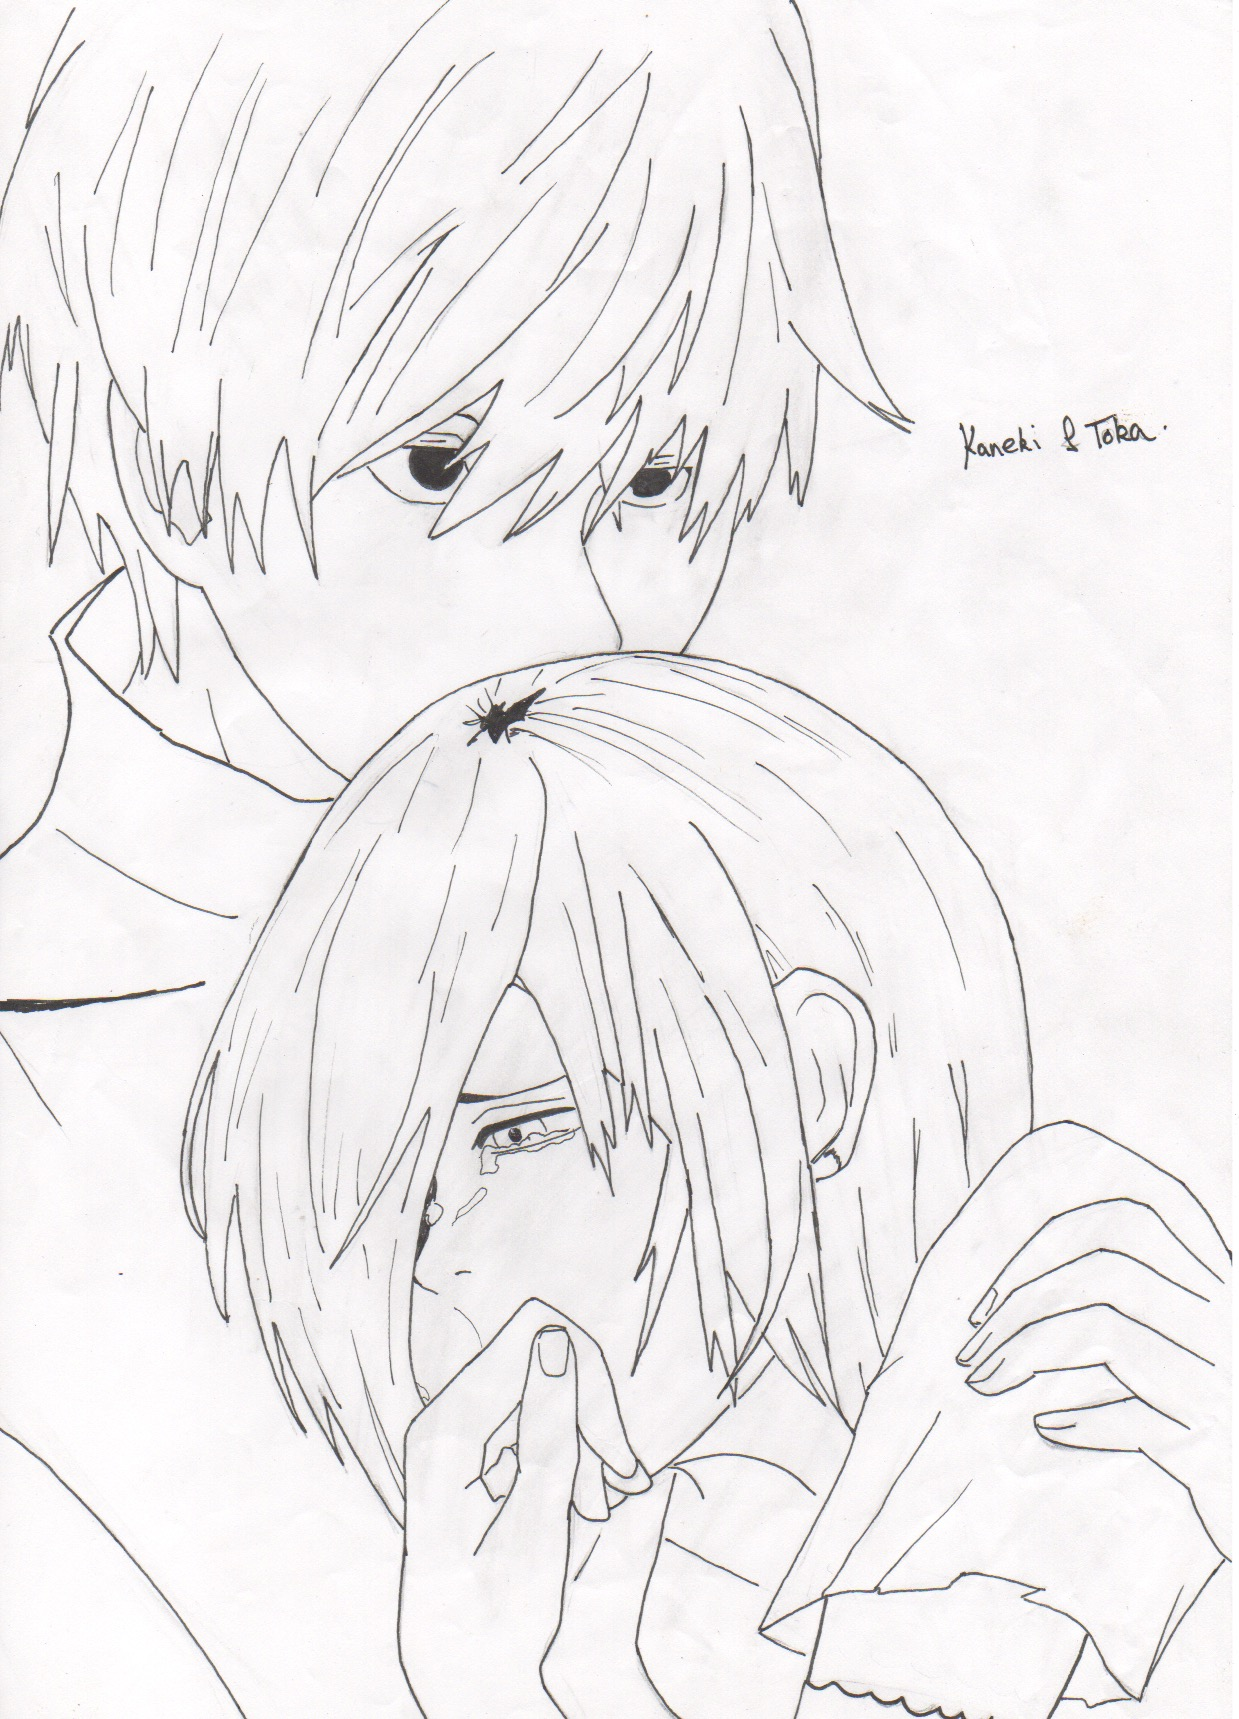 Kaneki Lineart : Kaneki and touka lineart by elow on deviantart